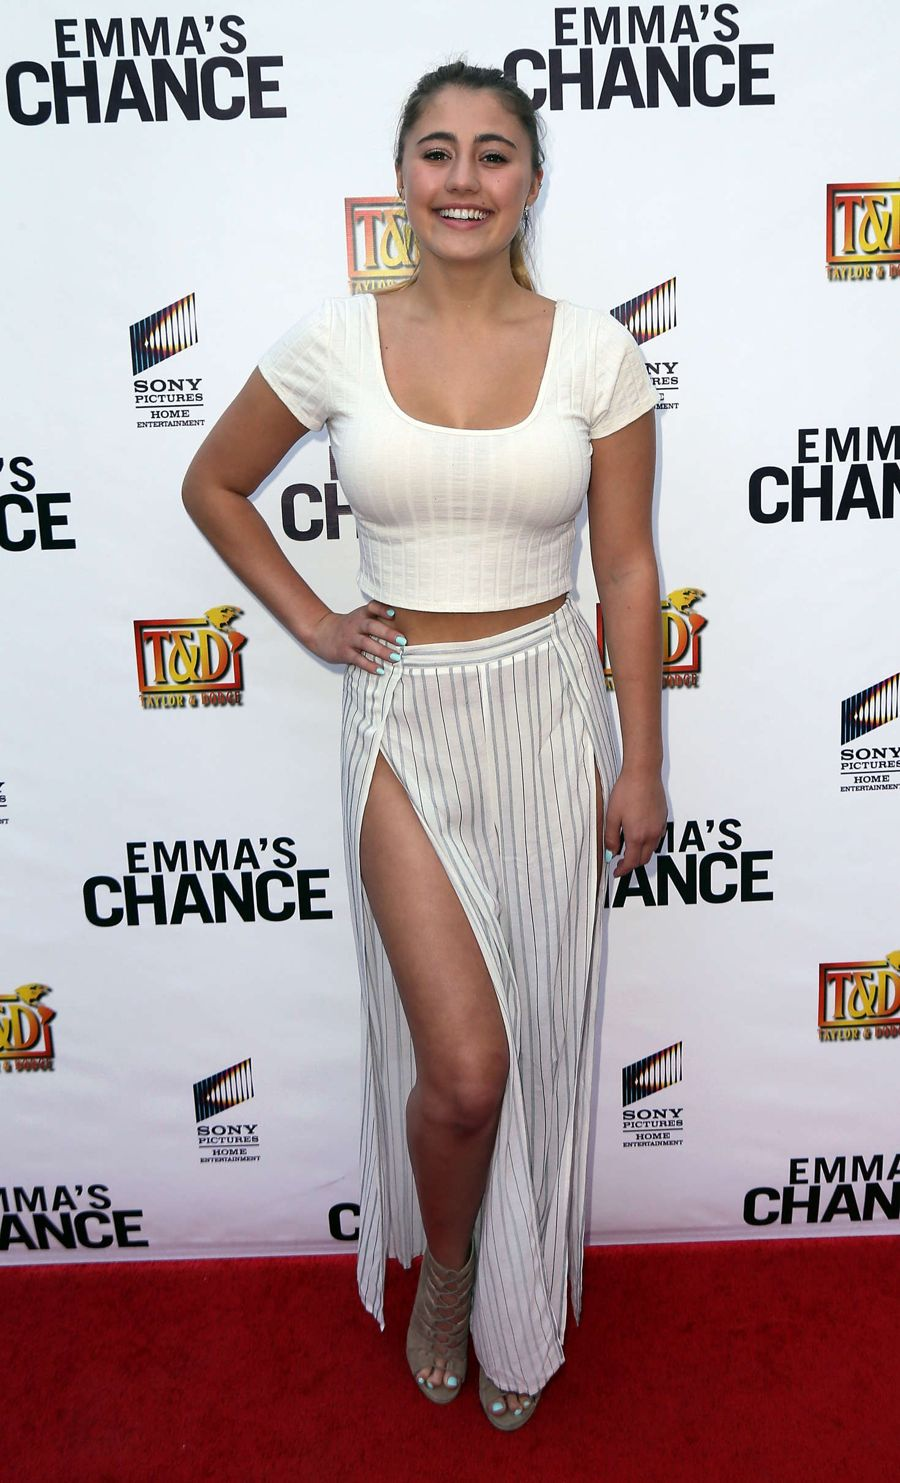 Lia Marie Johnson - 'Emma's Chance' Premiere